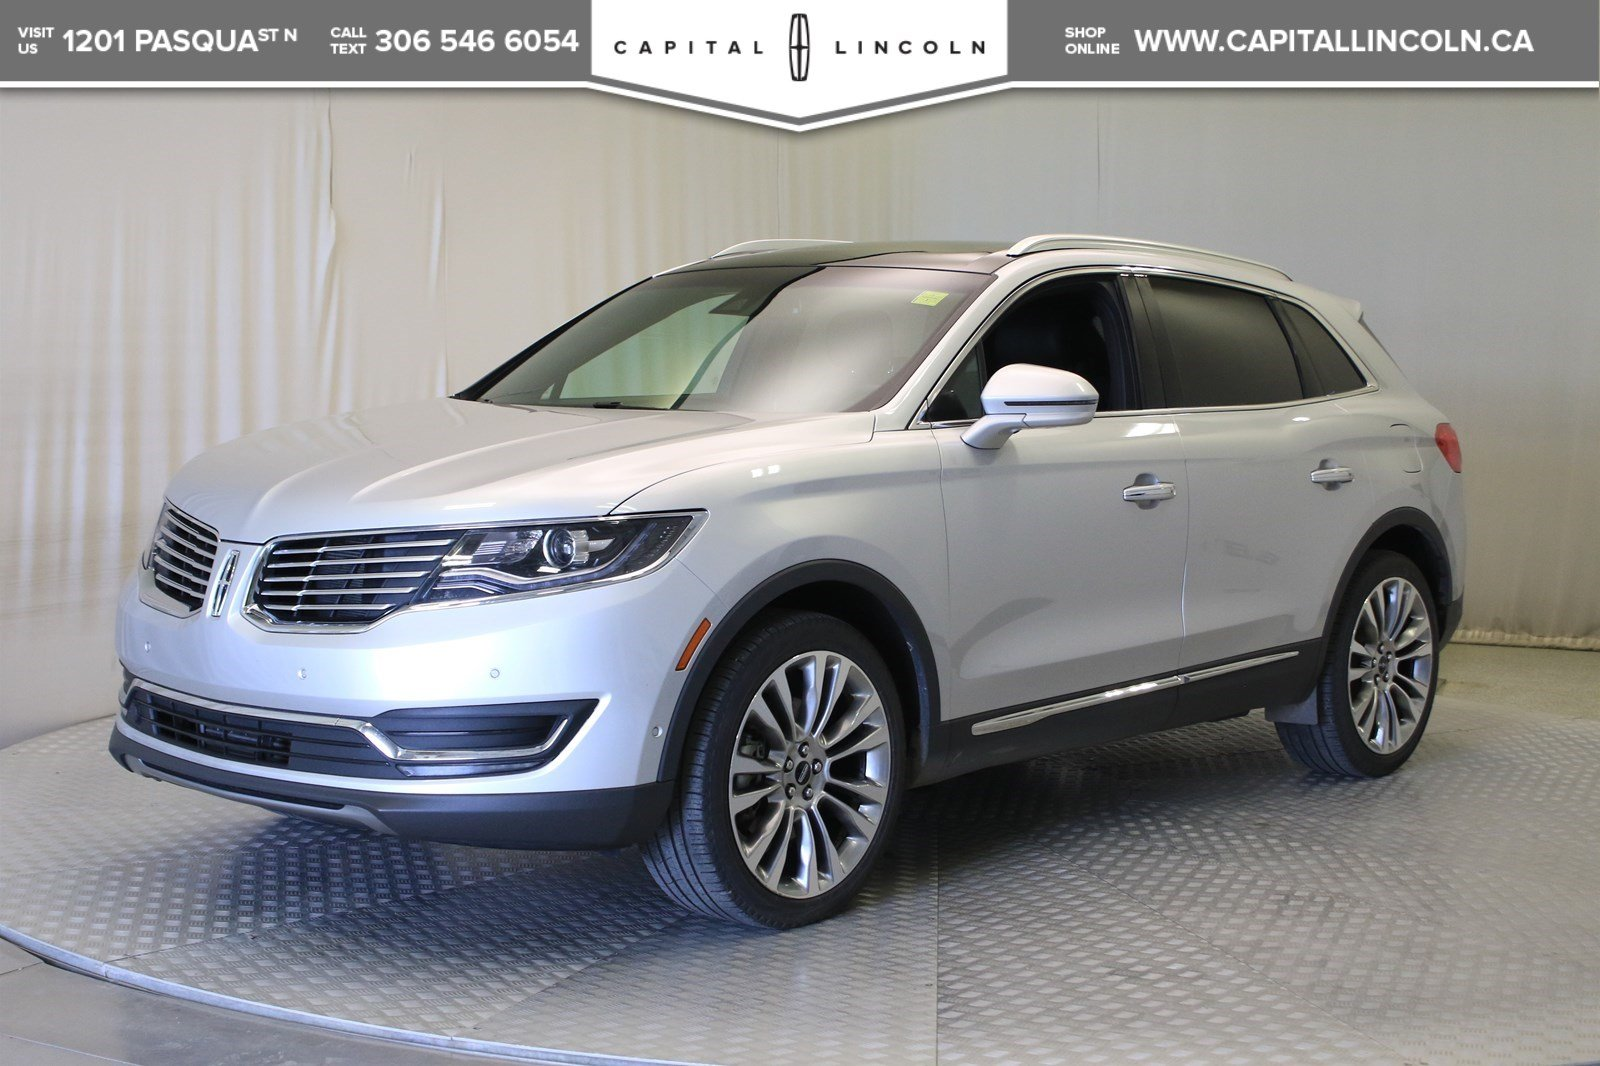 Lincoln Suv 2018 >> Pre Owned 2018 Lincoln Mkx Reserve Awd With Navigation Awd Stock U249a